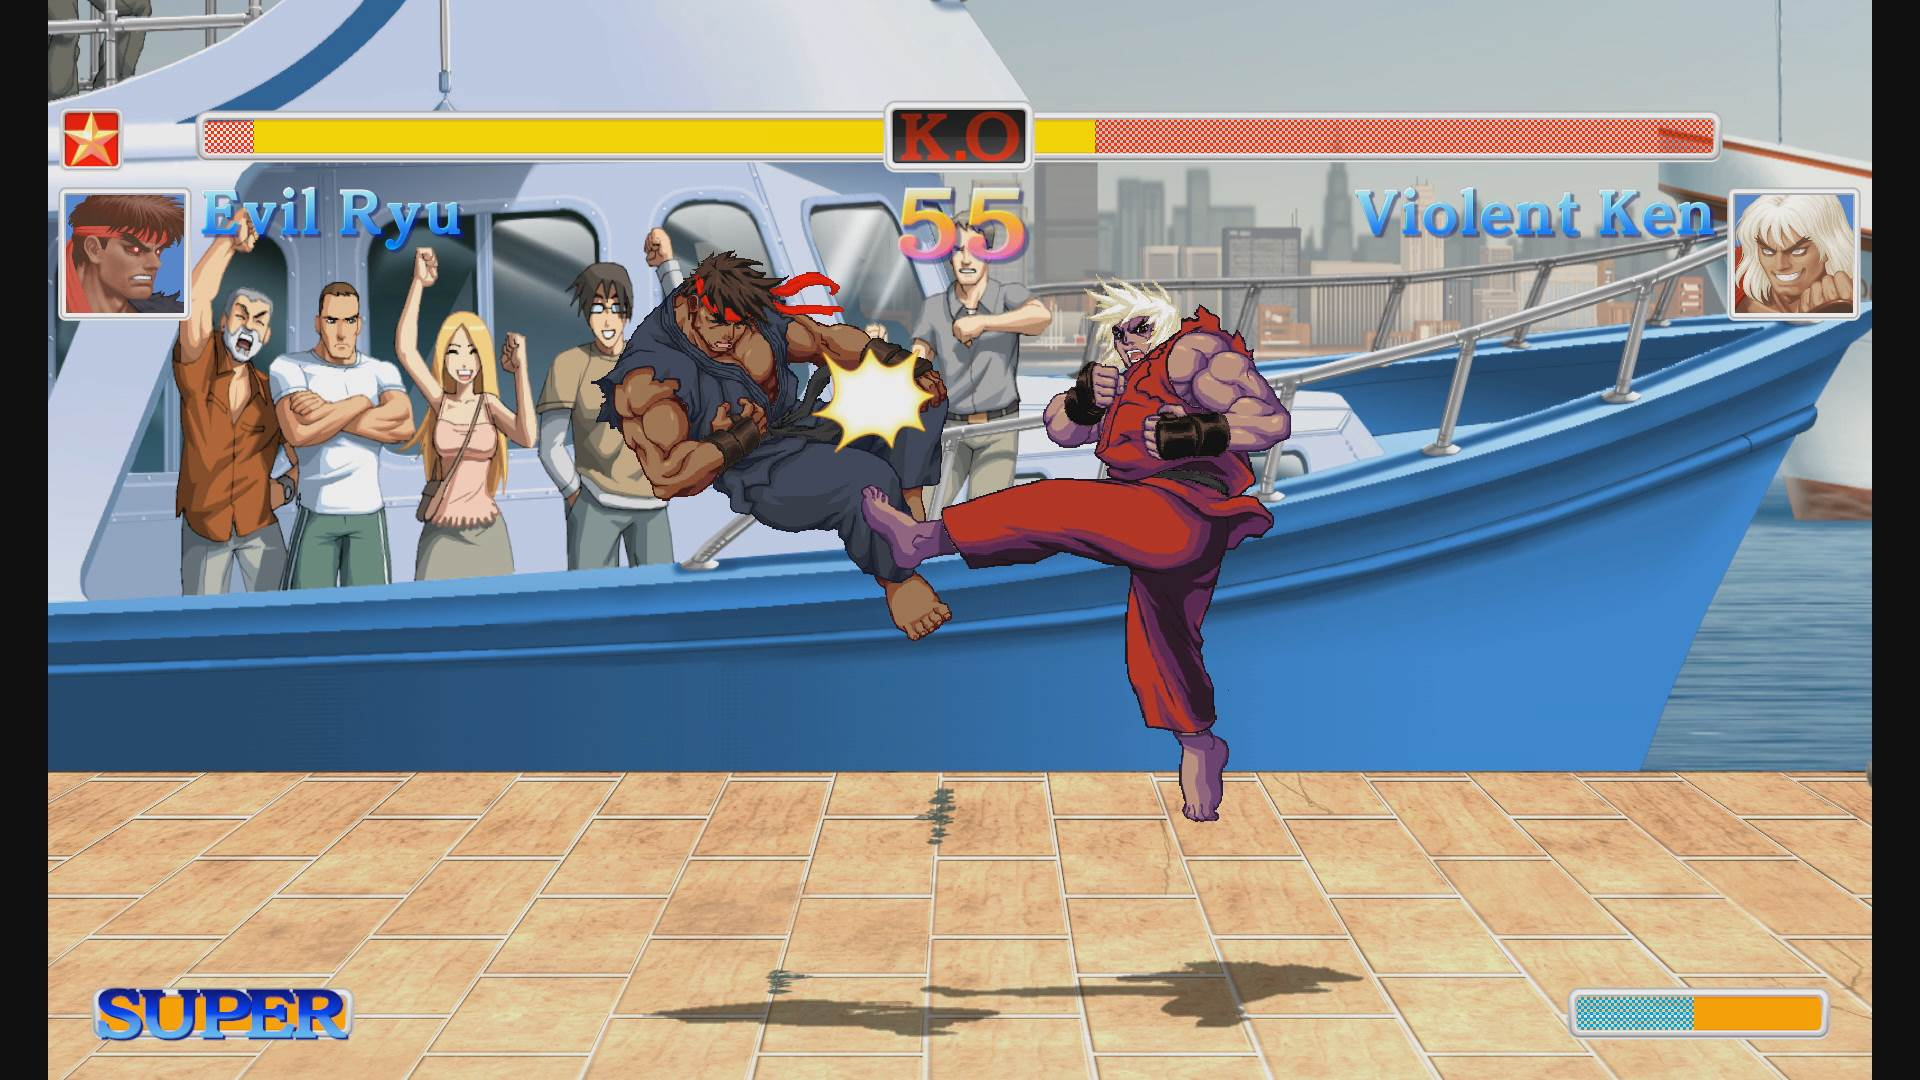 Ultra-Street-Fighter-2-Switch-evil-ryu-vs-violent-ken